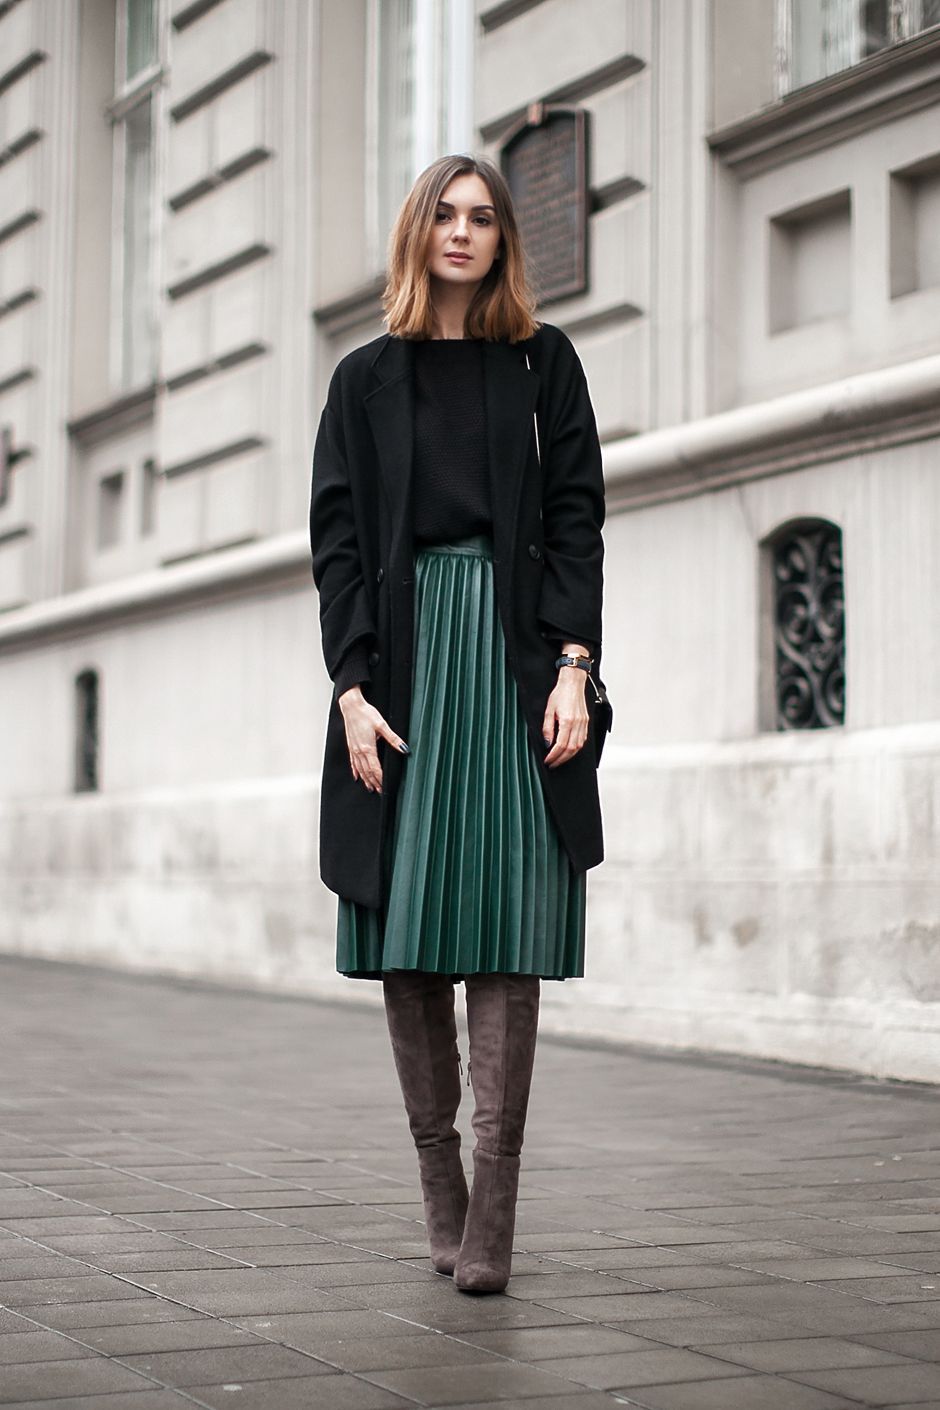 c6a3a583157f how-to-wear-pleated-green-pu-skirt-outfit-ideas | 灵感缪斯 in 2019 ...